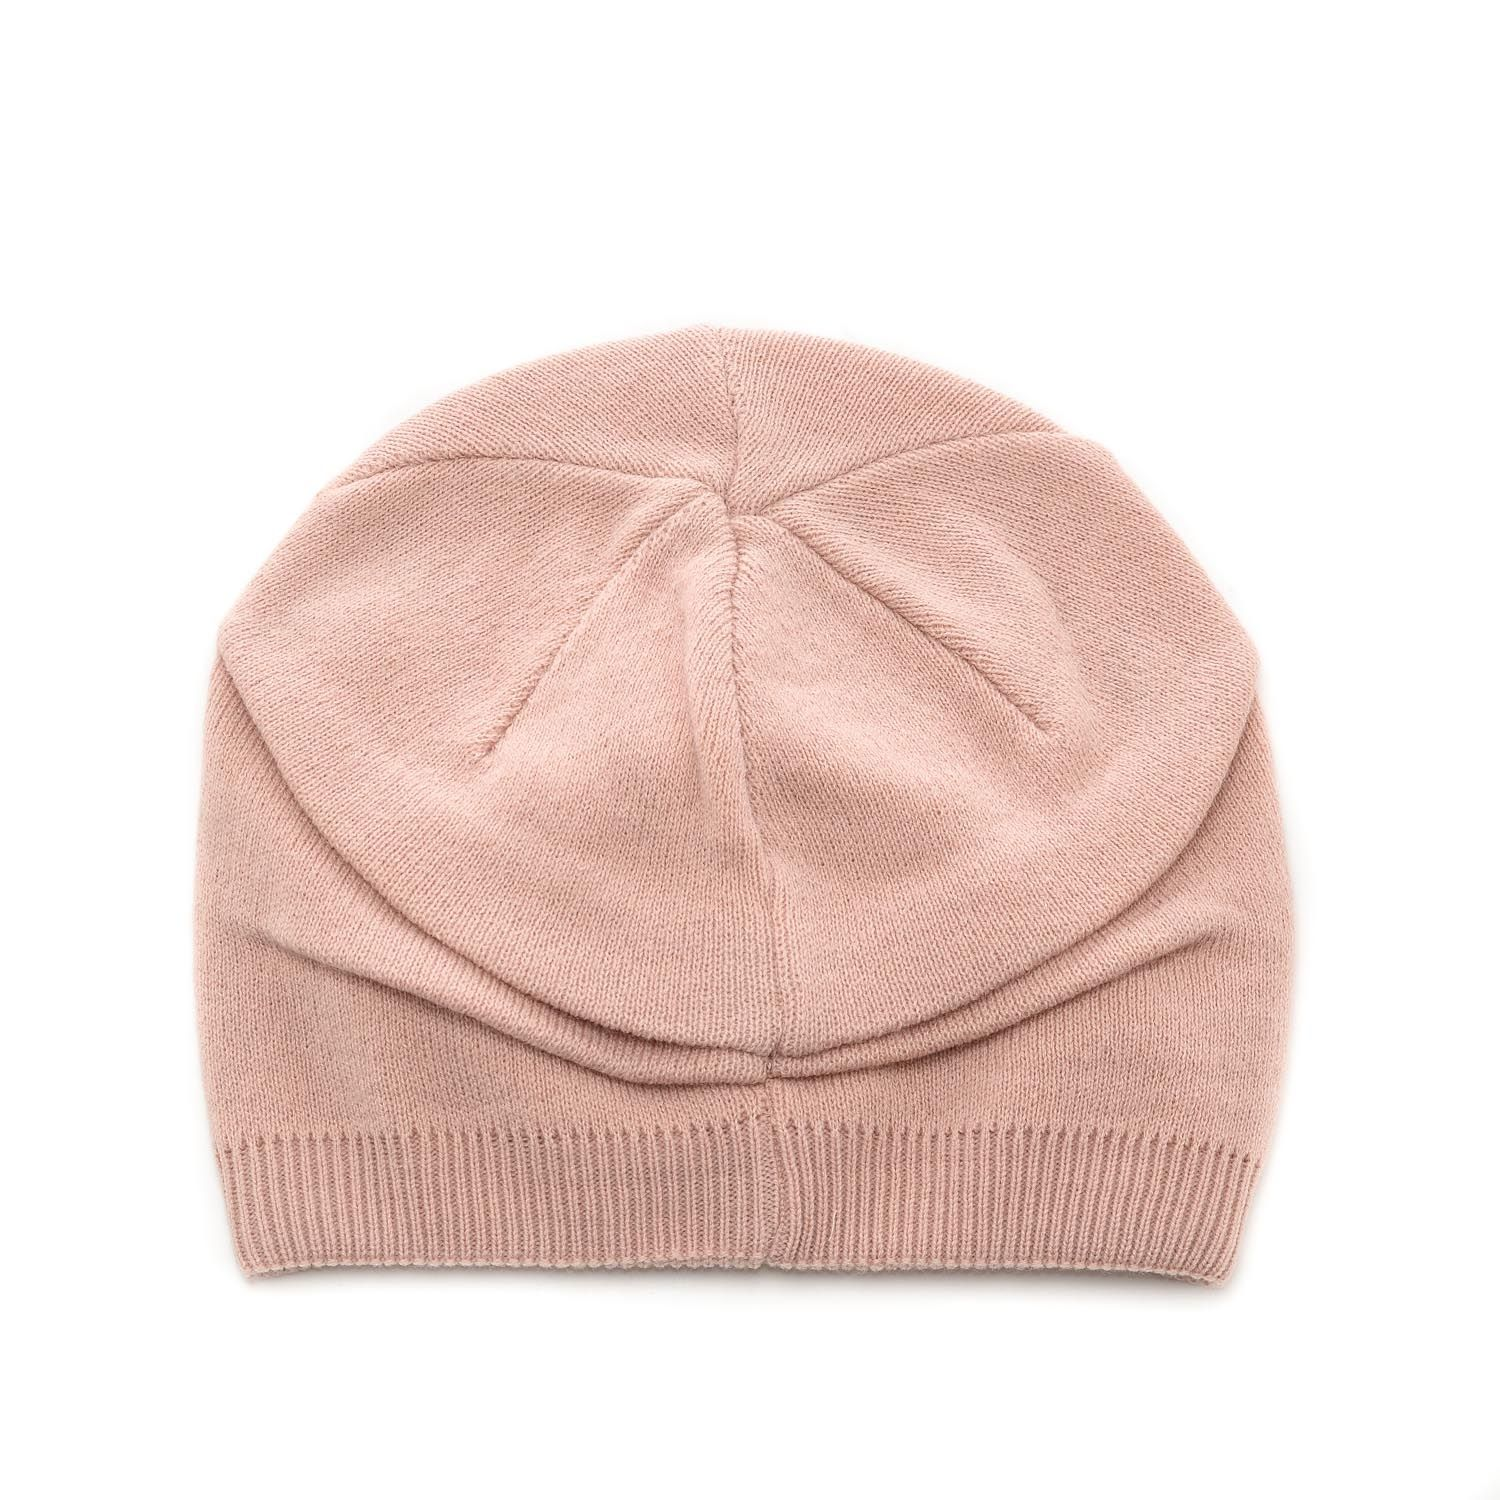 Guess cappello AW8220 WOL01